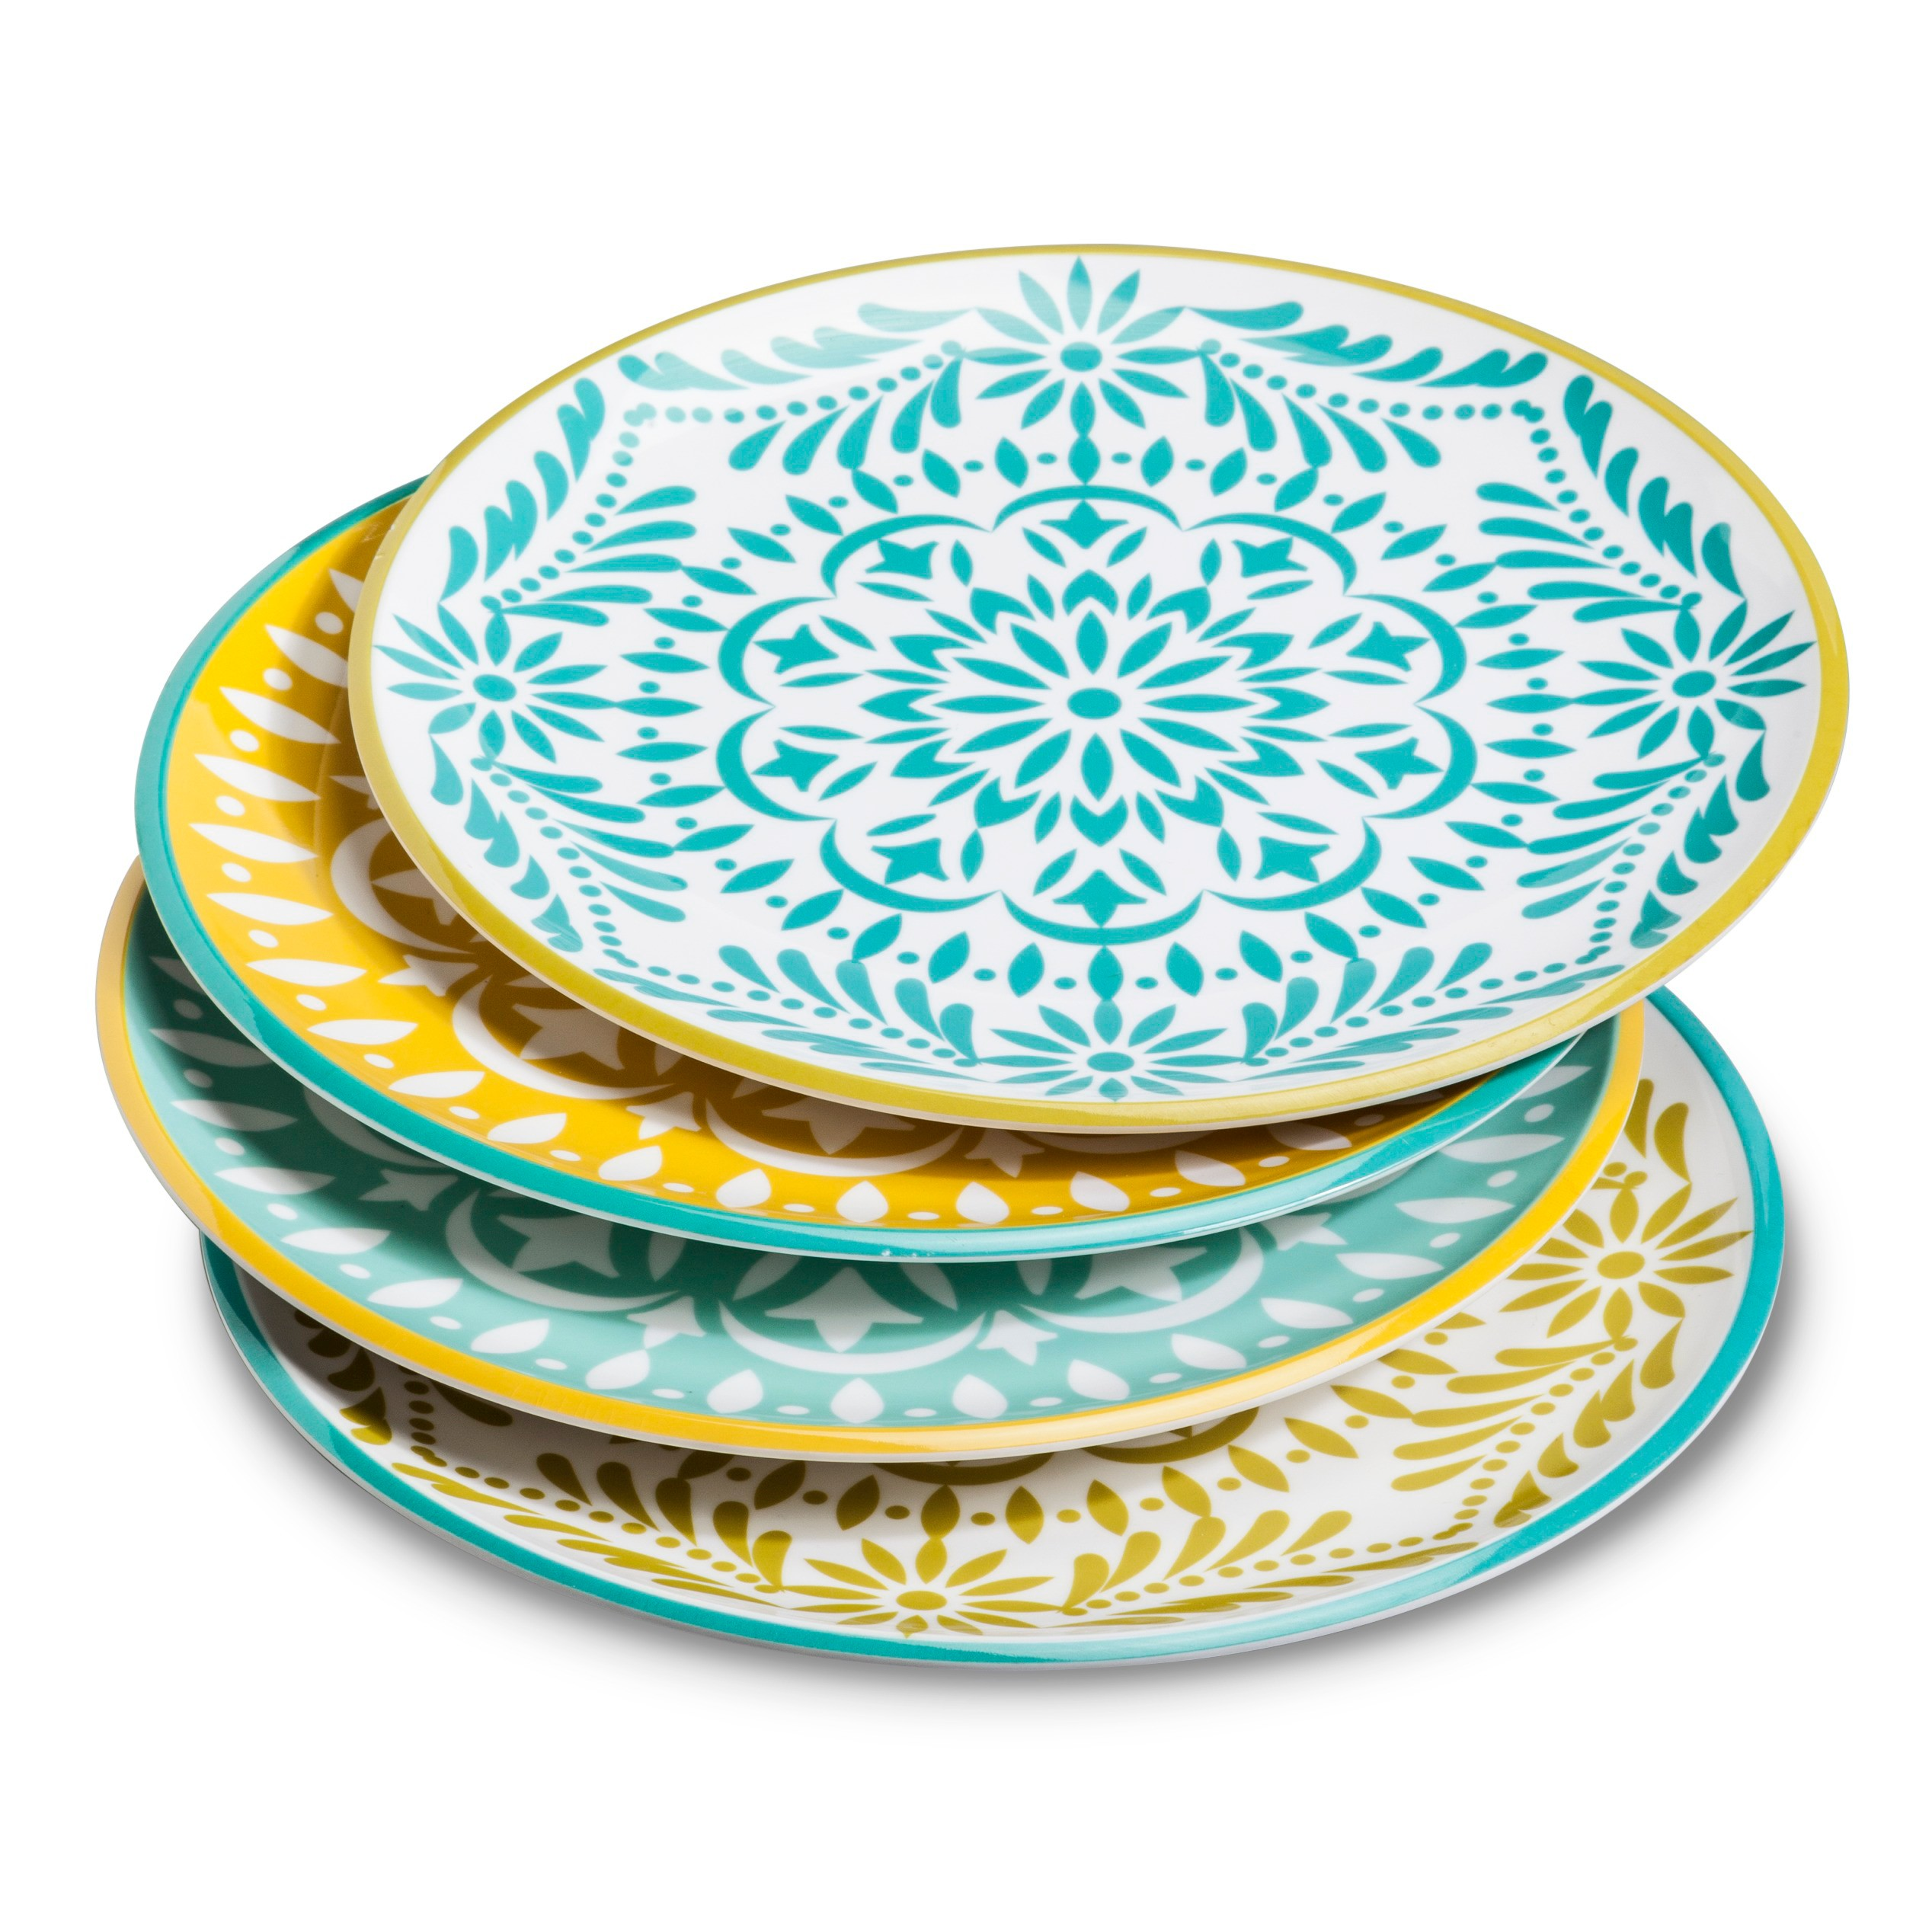 11 Melamine Plates COCOCOZY : target melamine plates cococozy from cococozy.com size 2536 x 2536 jpeg 658kB